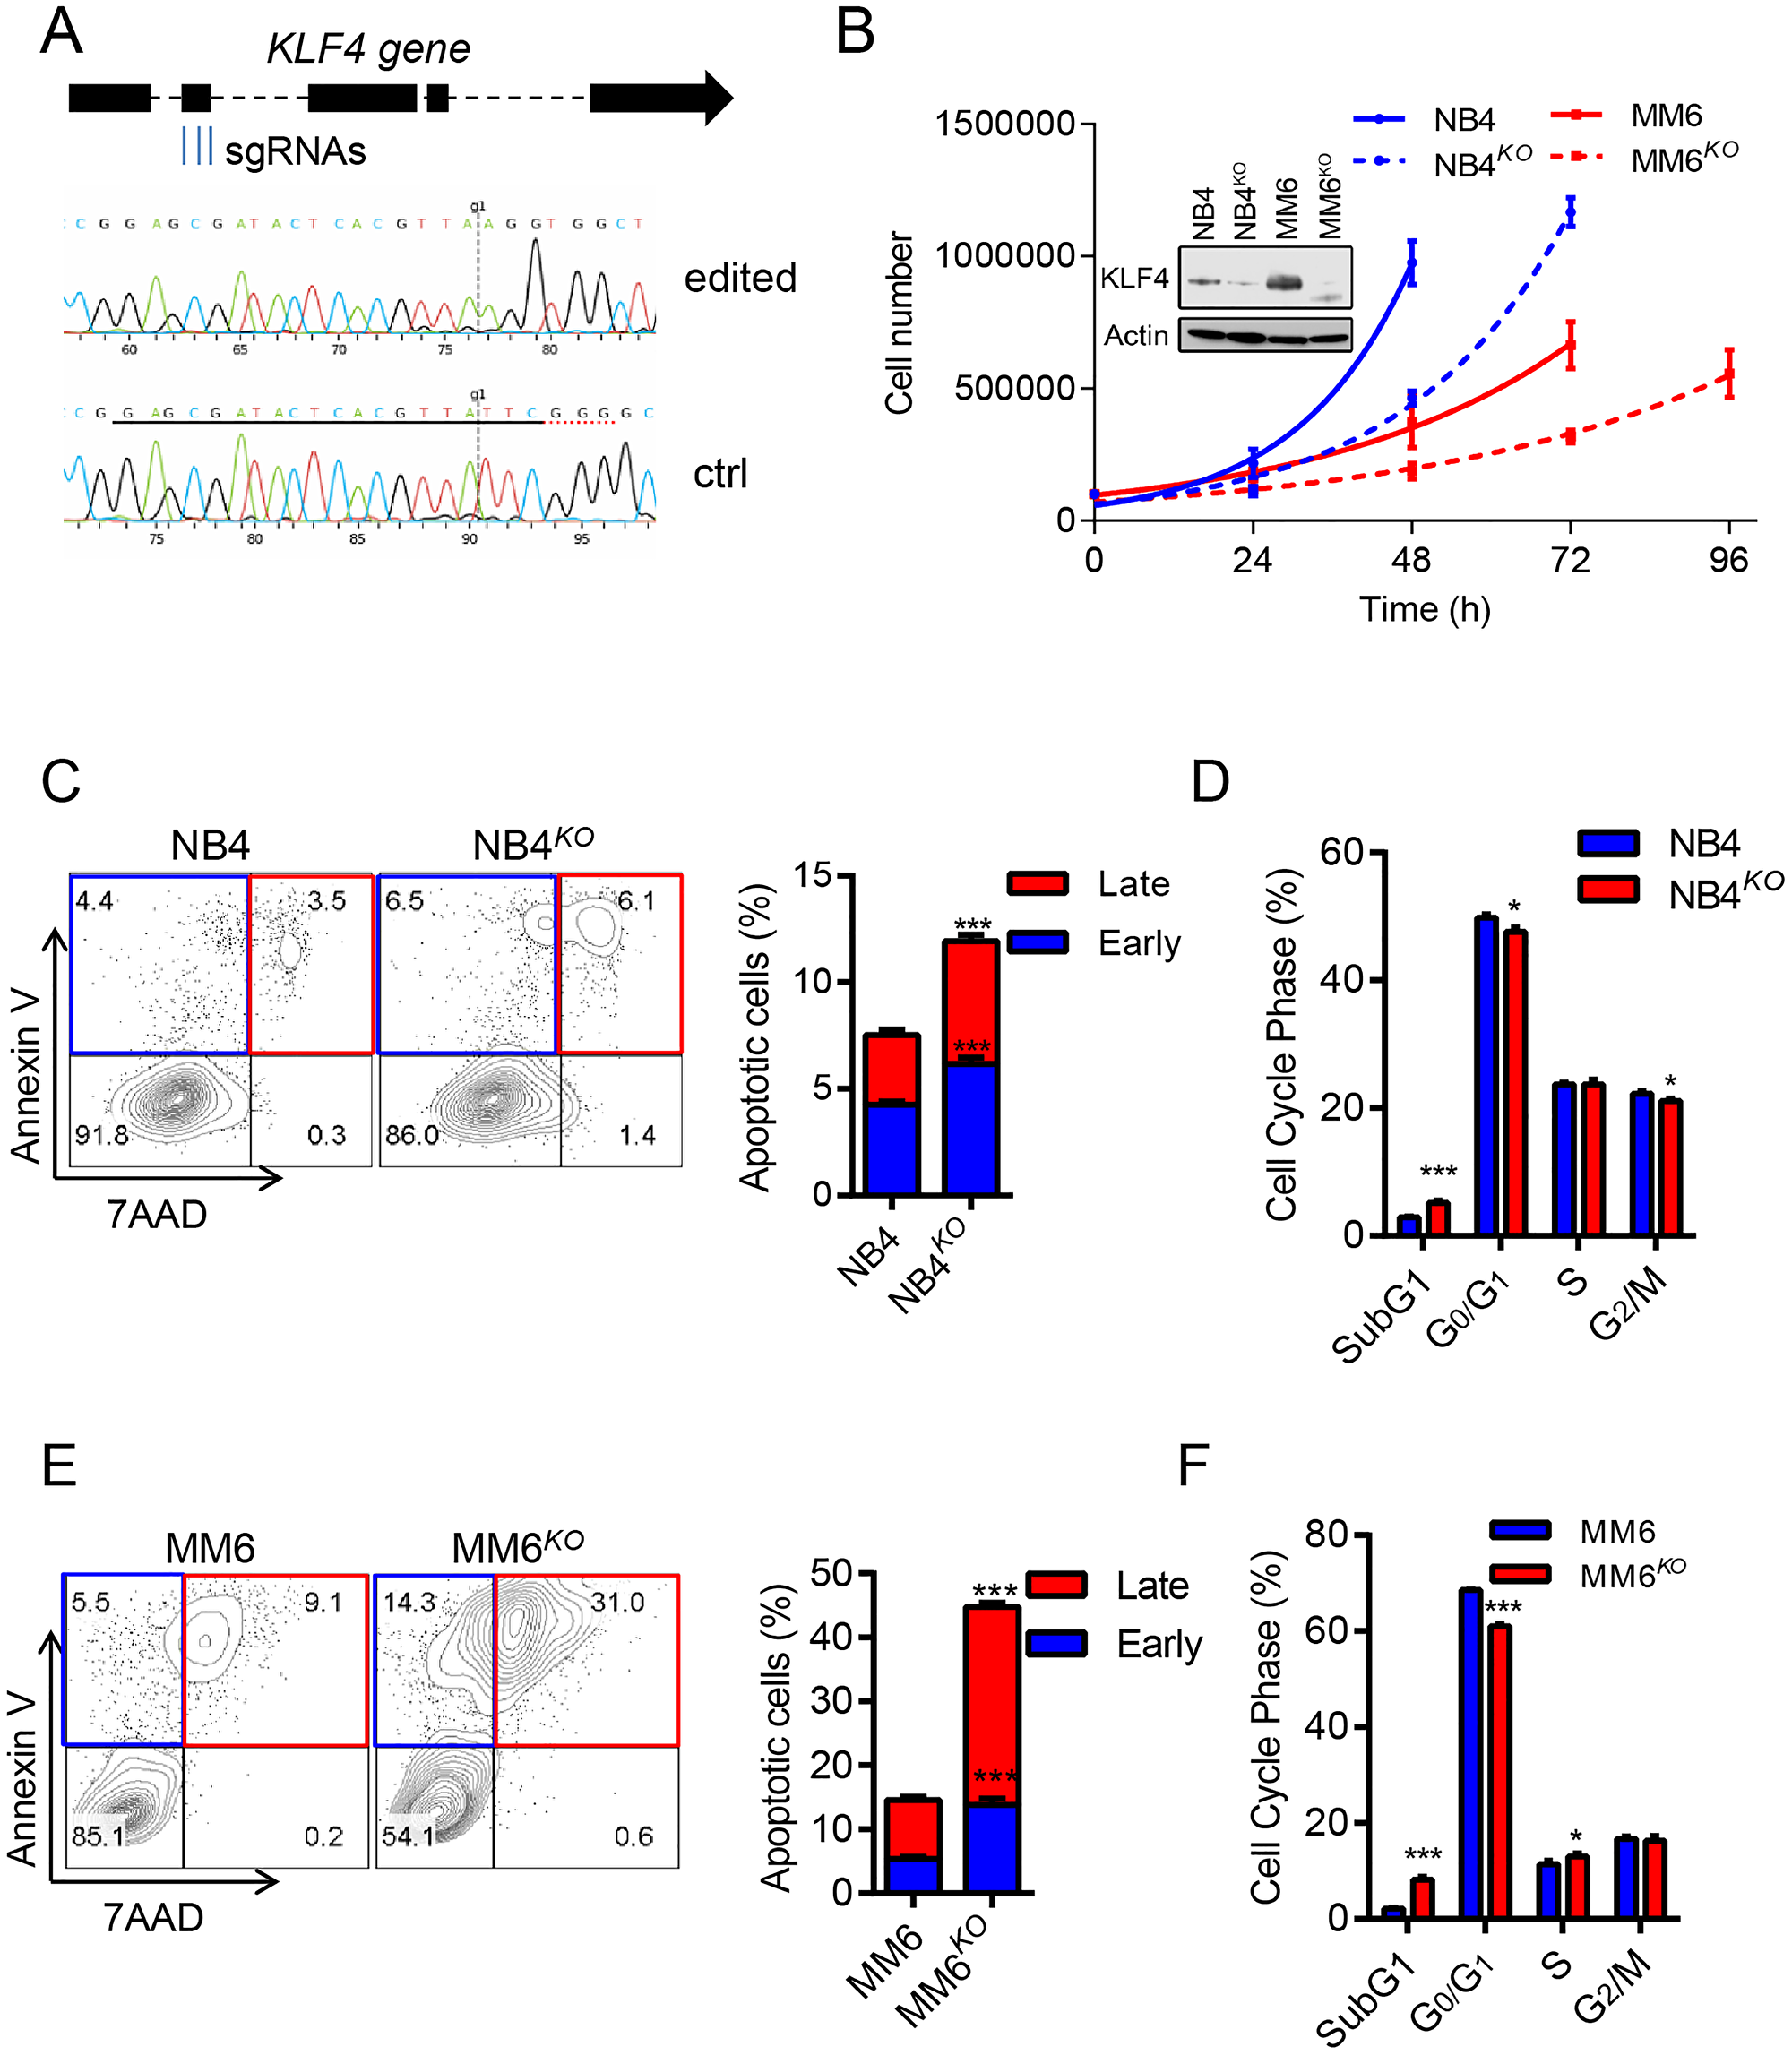 KLF4 deletion inhibits cell growth and induces apoptosis.